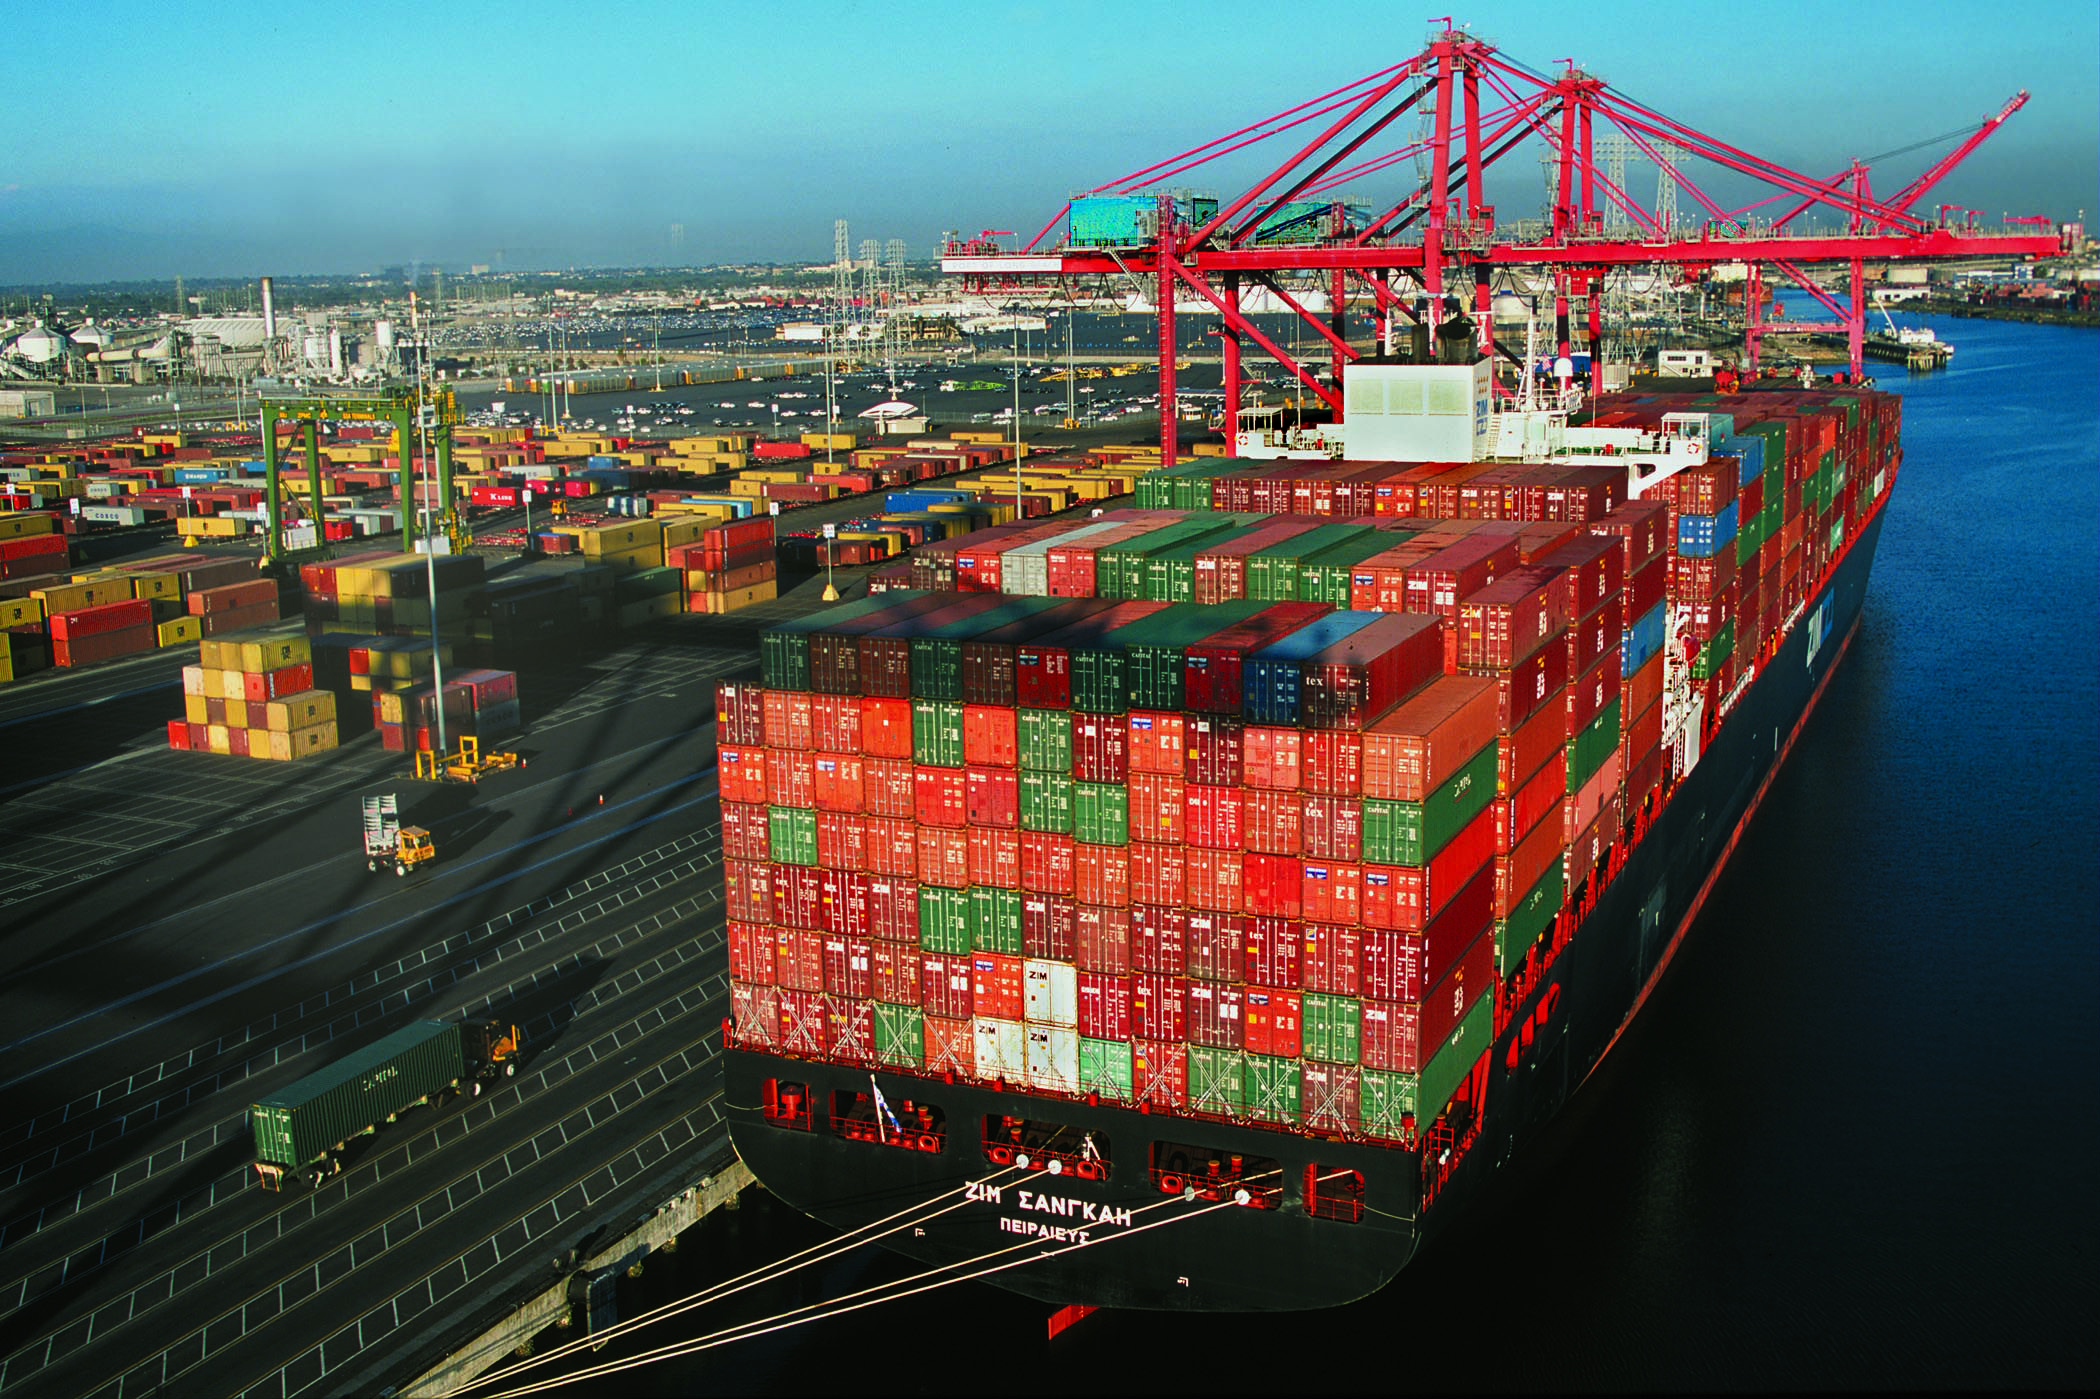 92c810108e972 The Port of Long Beach last month achieved its busiest September ever,  closing out a record quarter in the port's 104-year history.